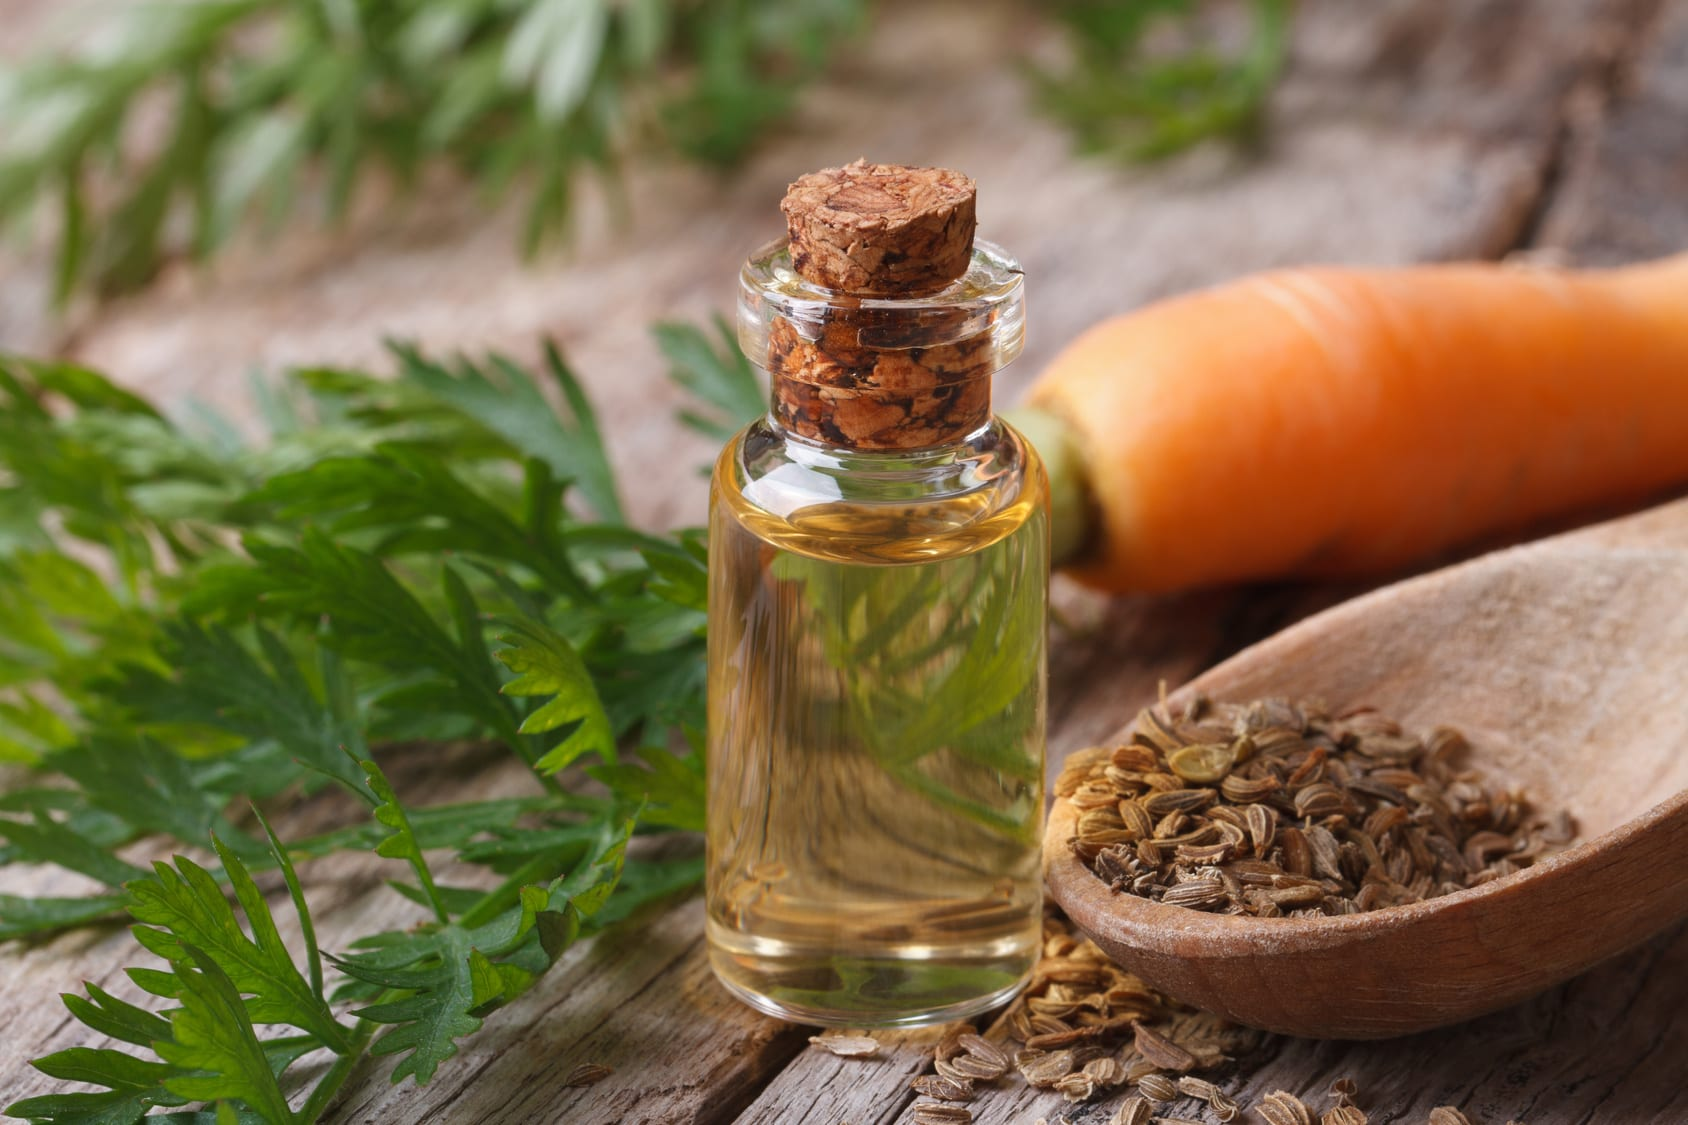 The essential oil of carrot seeds in a glass bottle macro